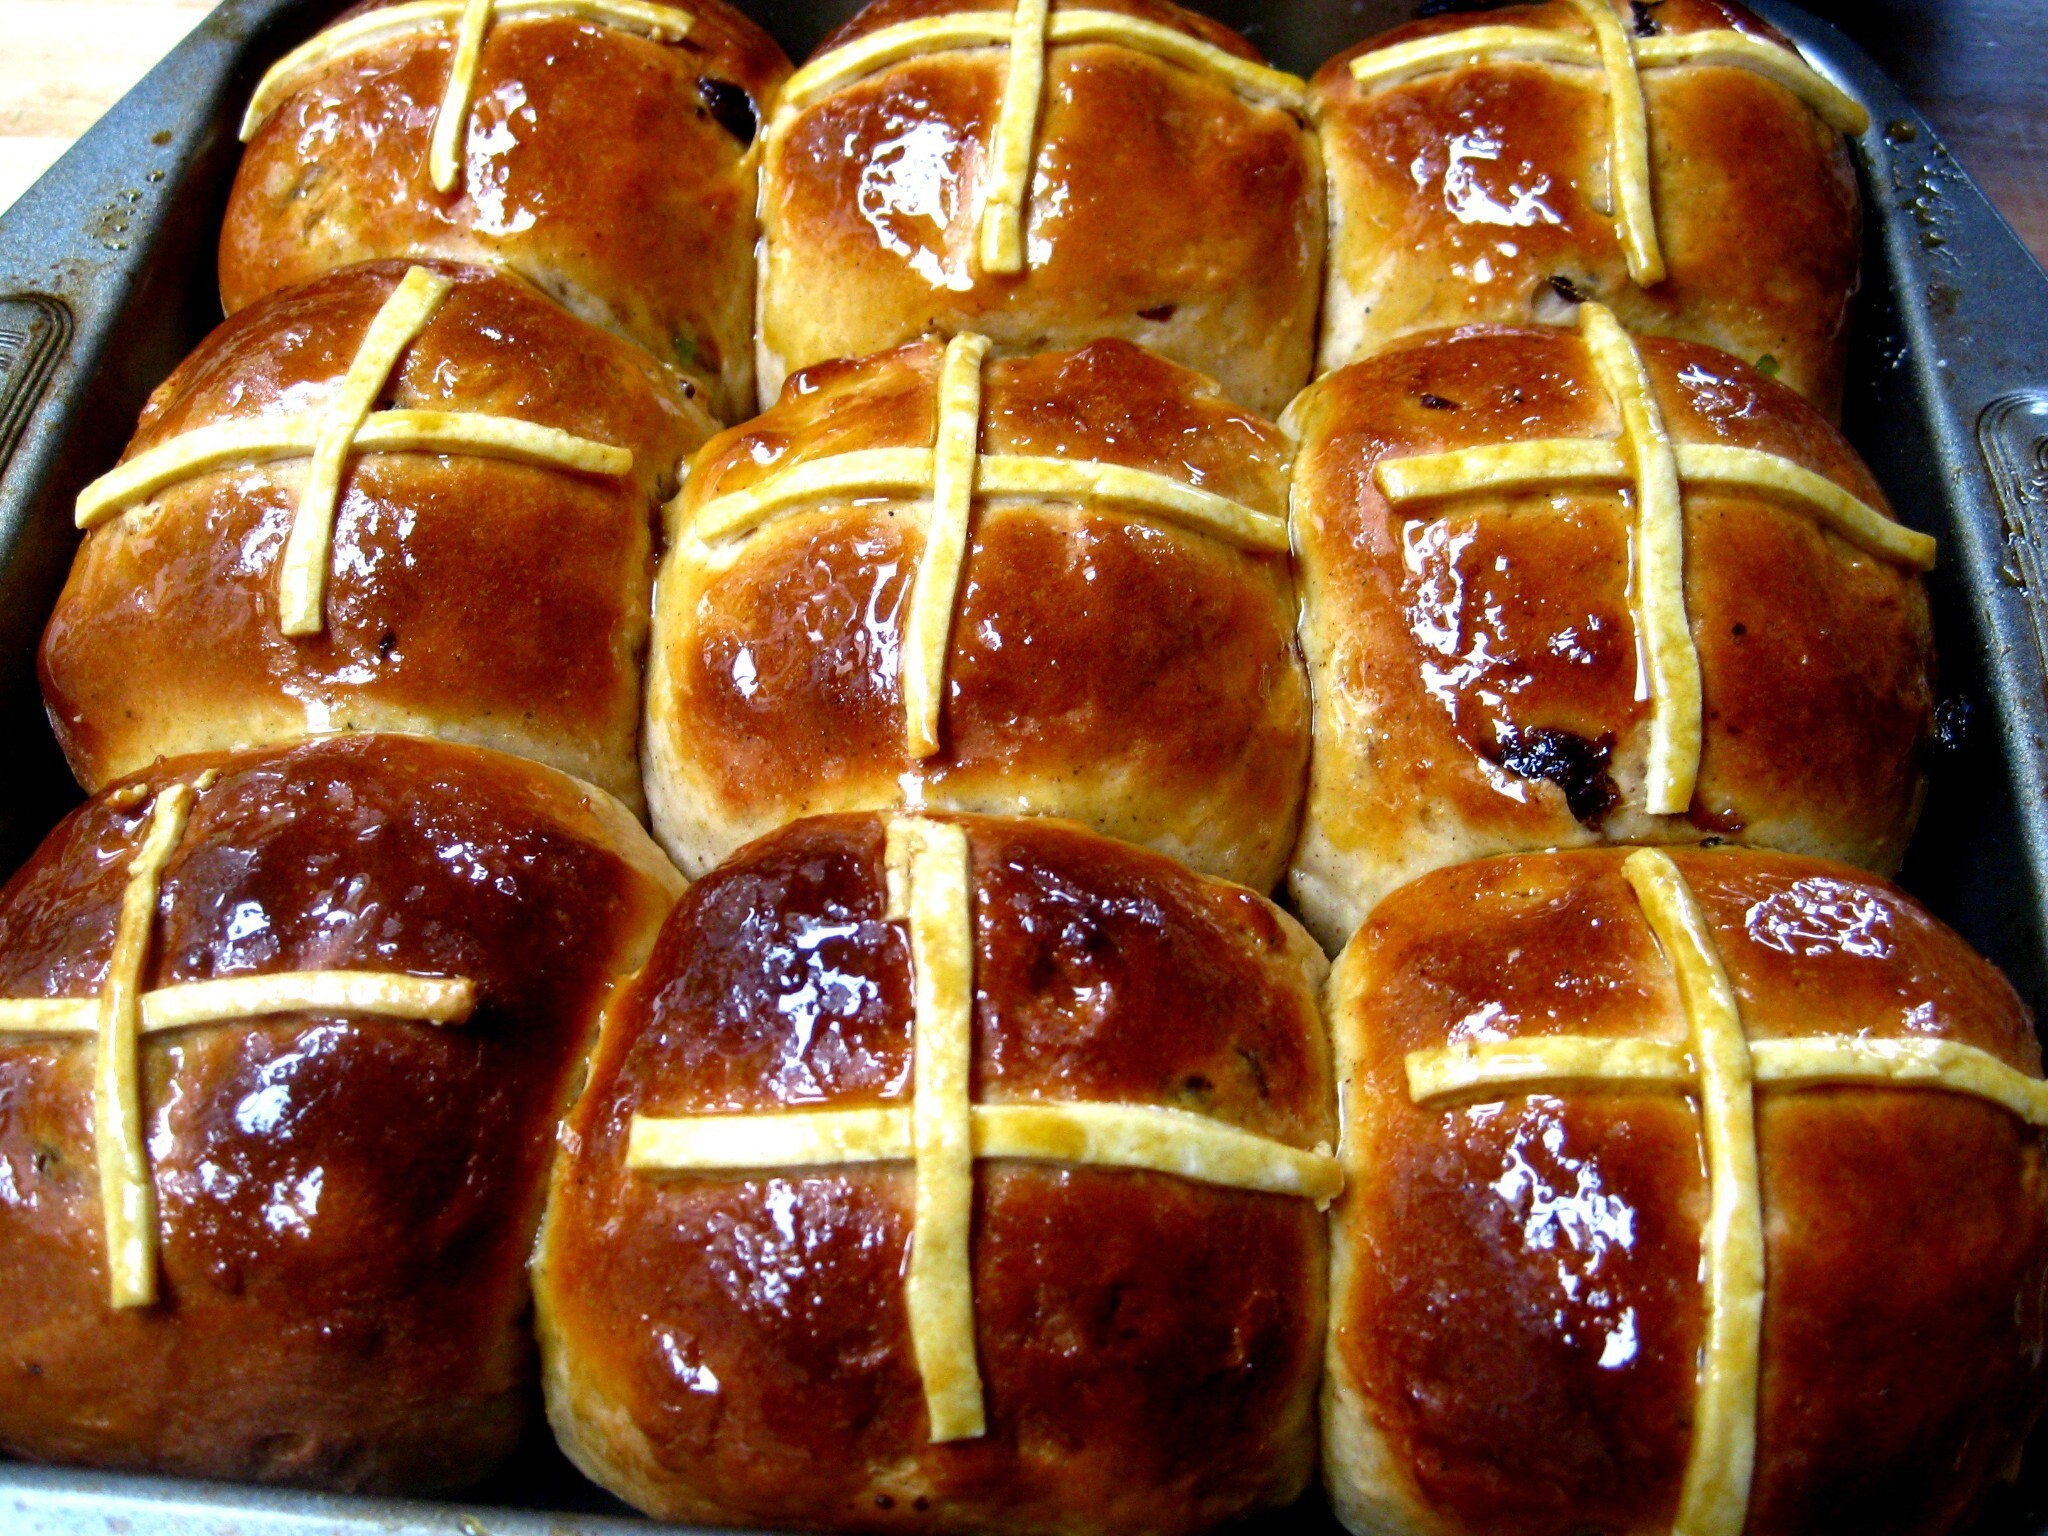 Hot cross buns: the recipe!